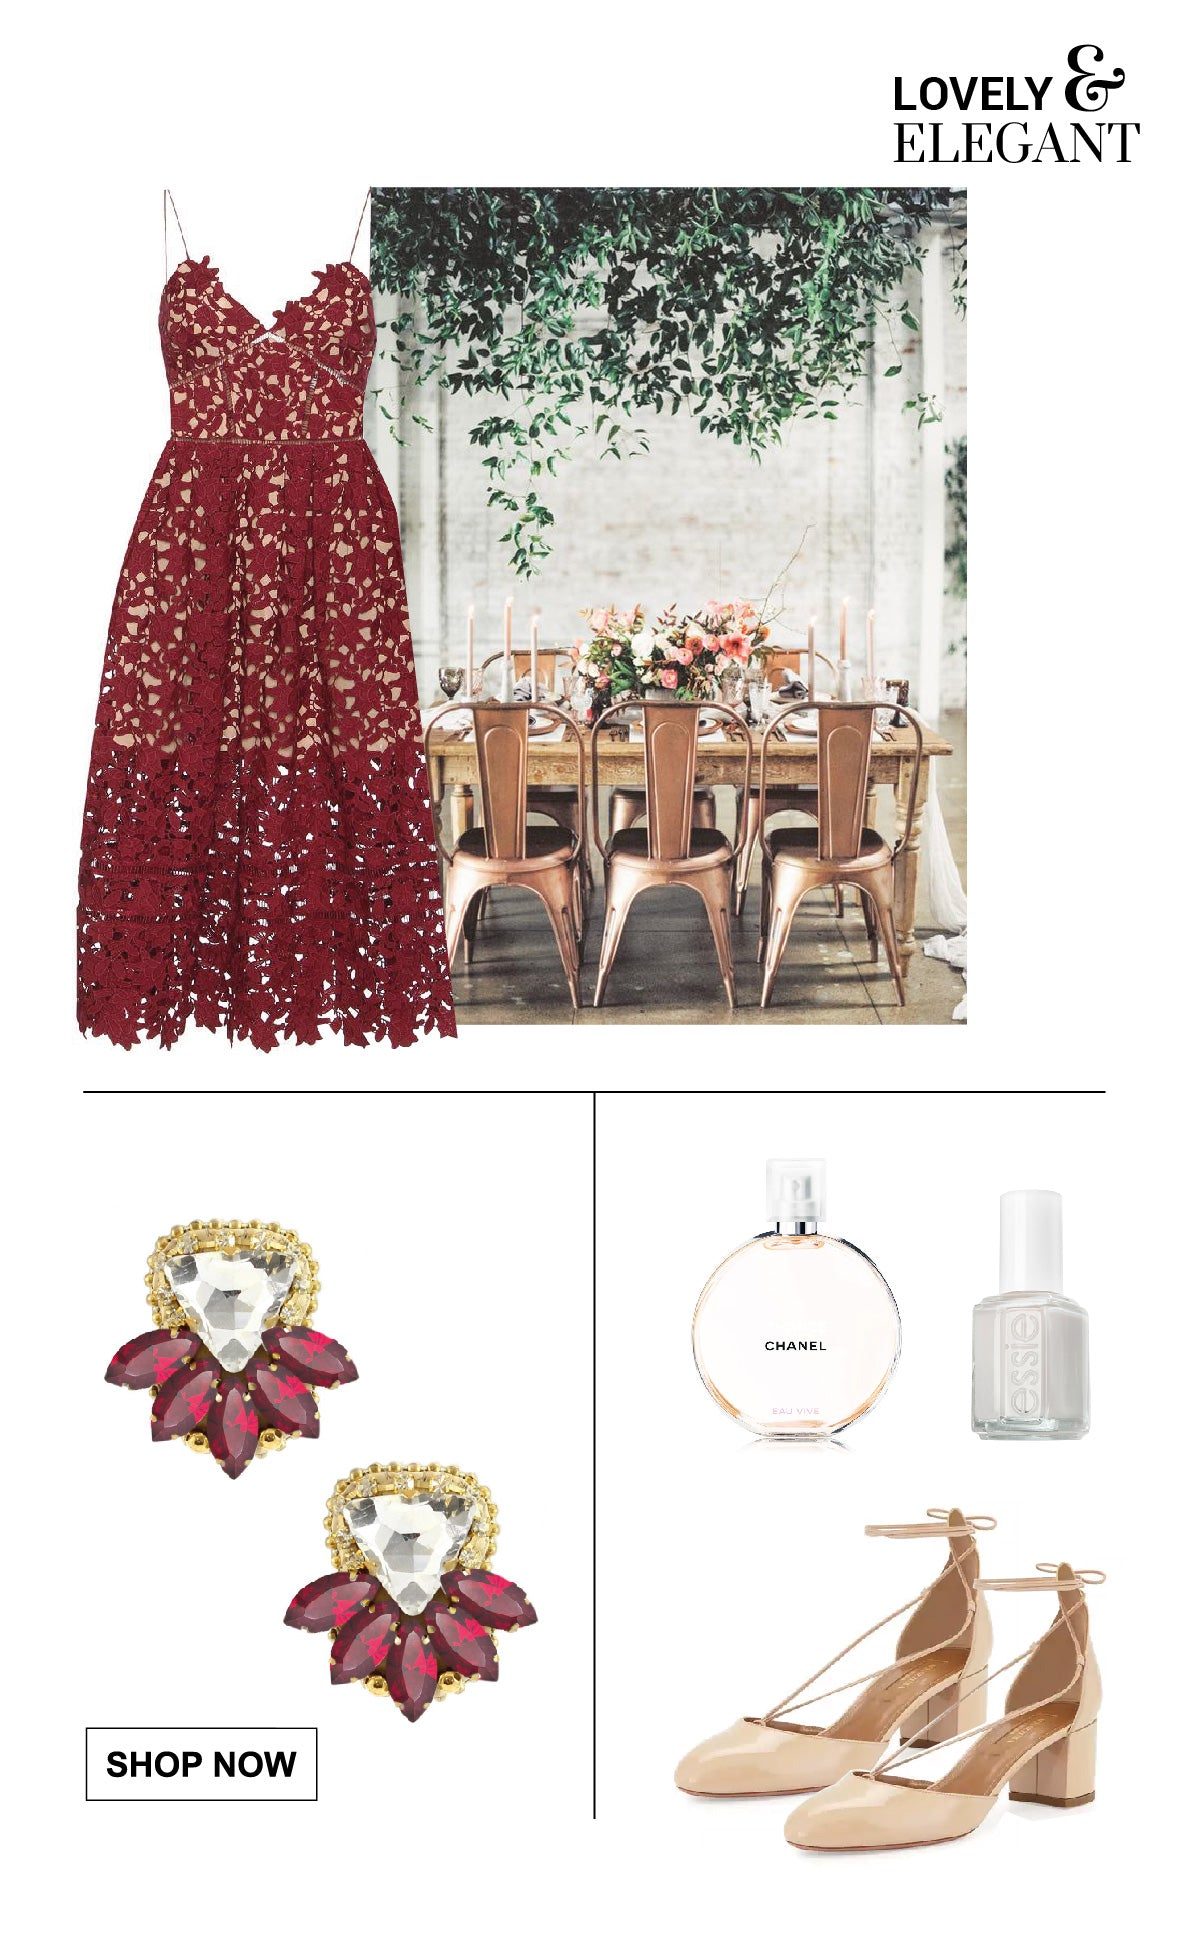 Charming and elegant attire for ladies of a vintage wedding.